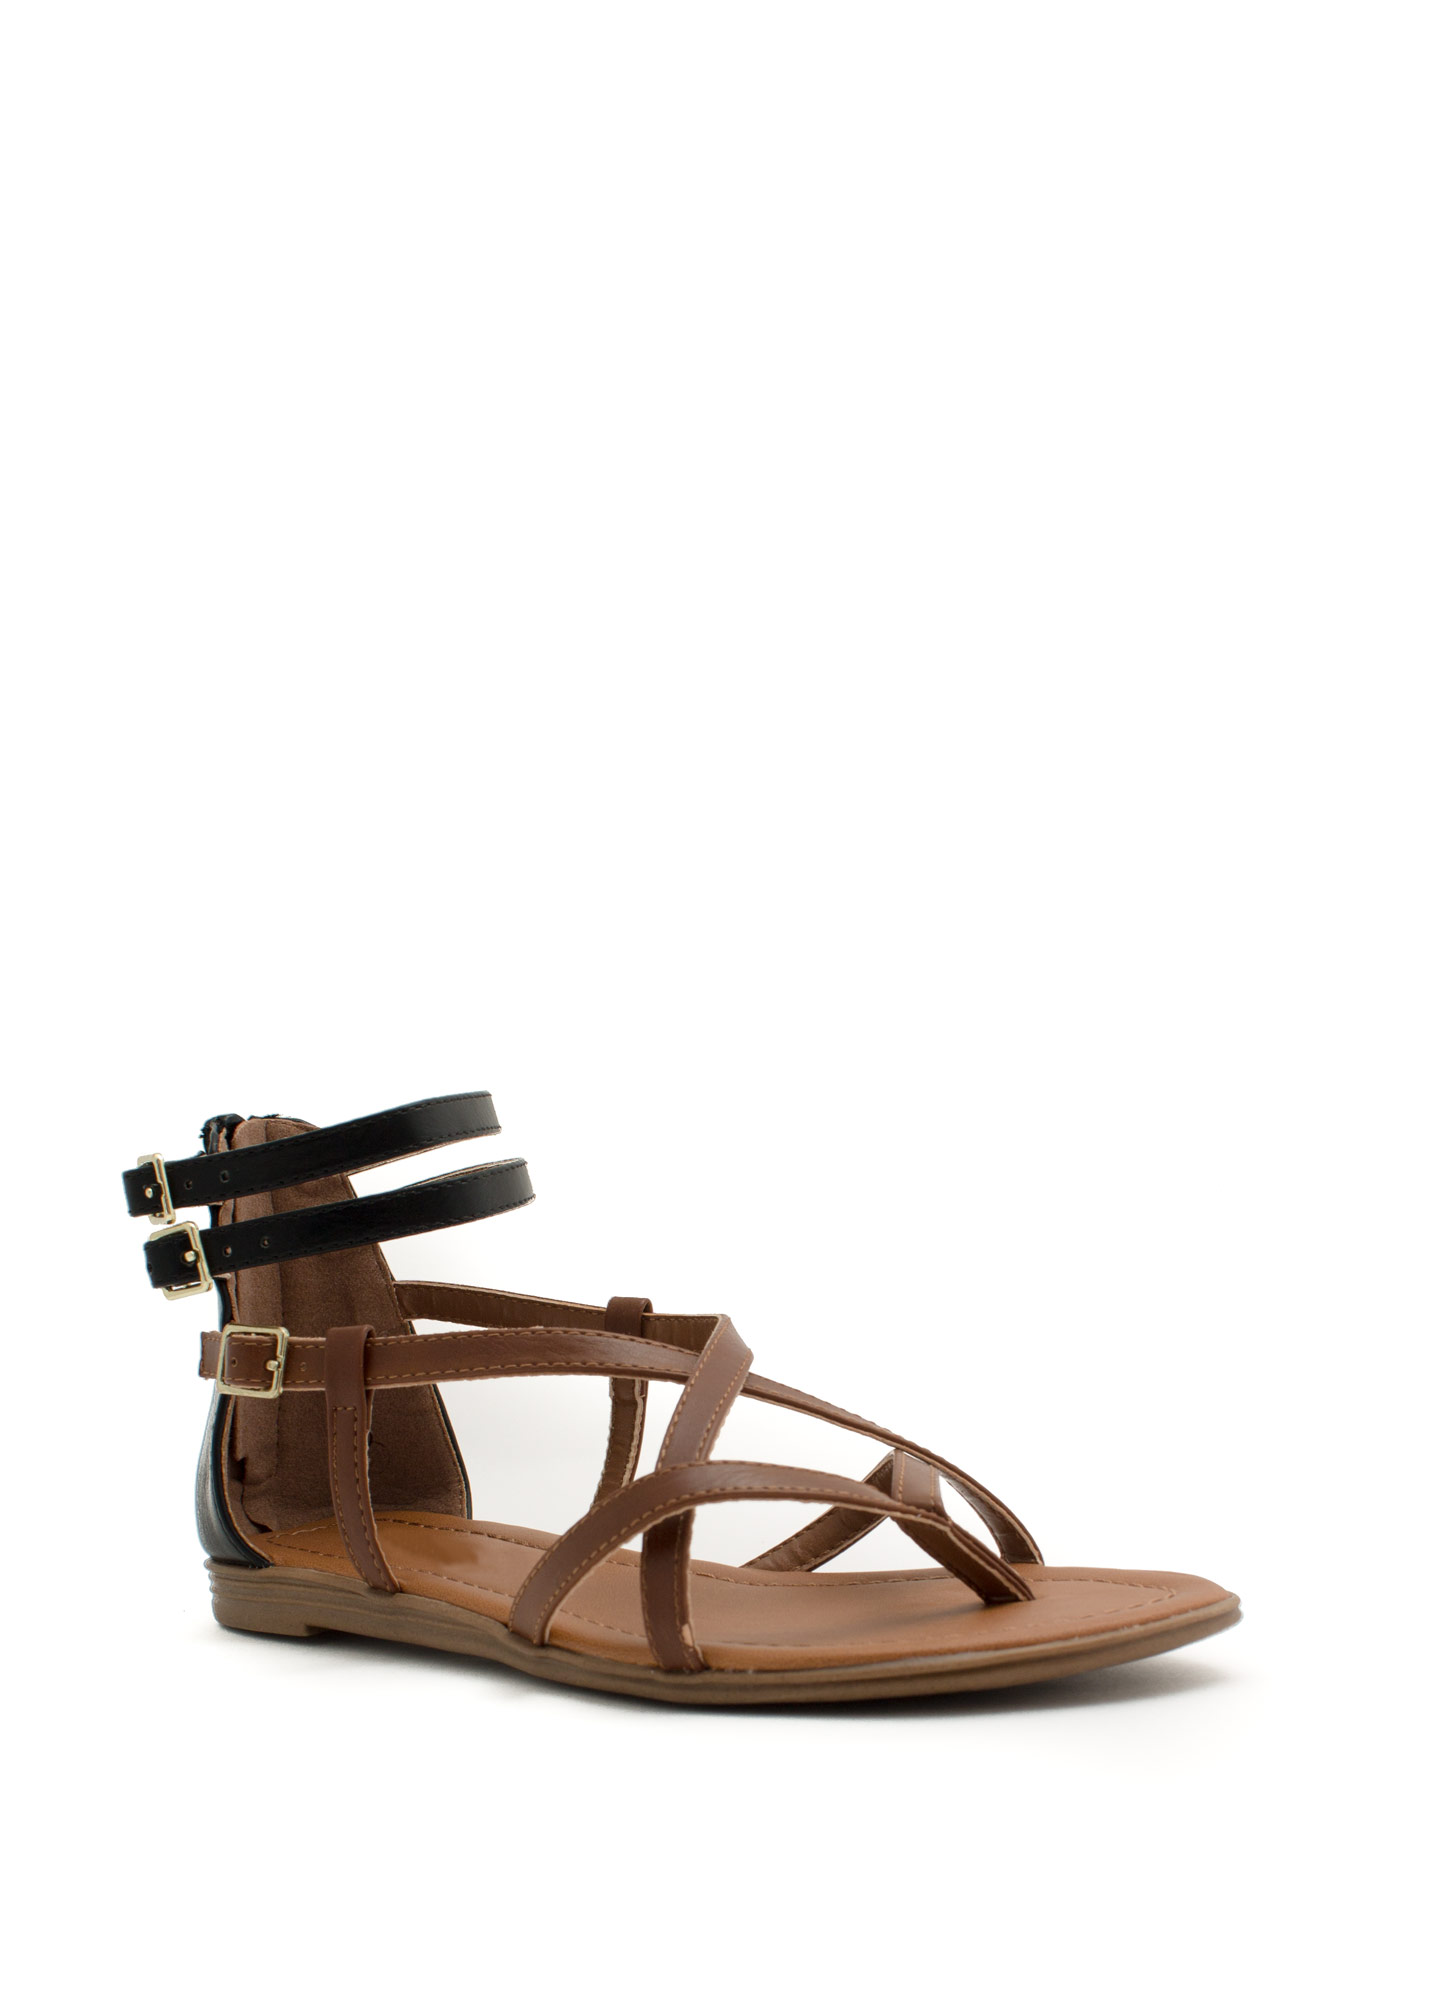 Cross Paths Faux Leather Sandals TANBLACK